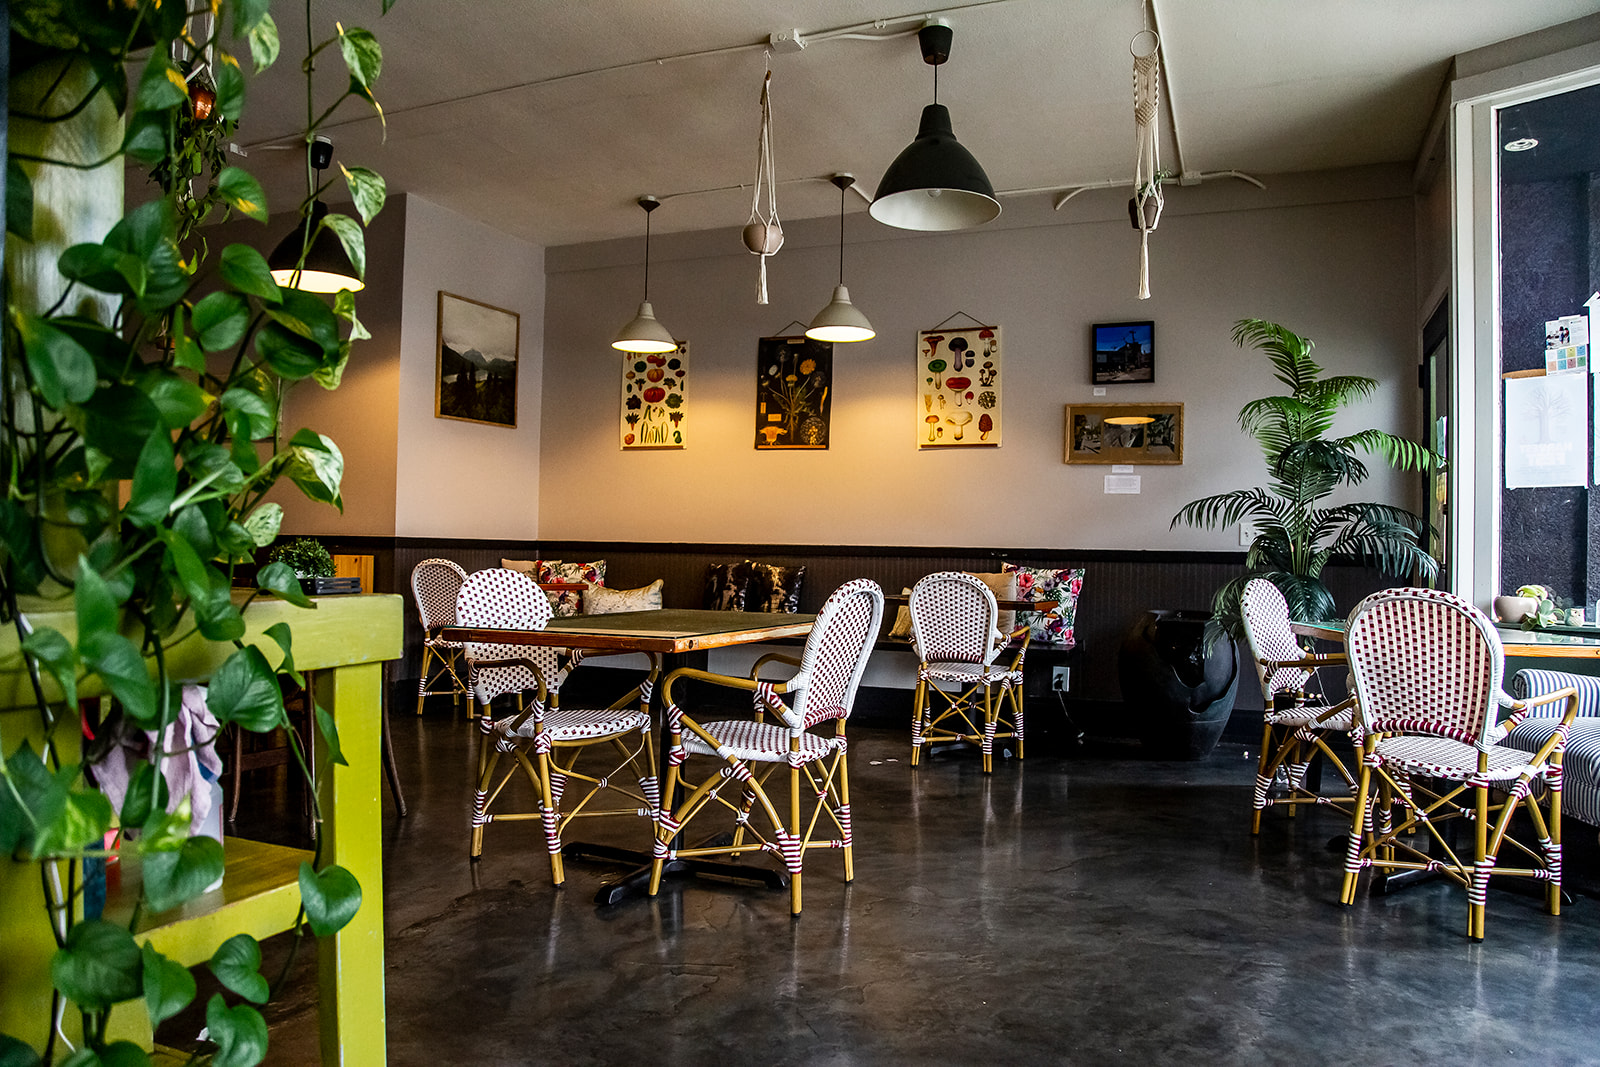 "To adhere to COVID restrictions and guidelines, indoor seating has been rearranged for proper social distancing measures. Cafe Mia features seasonal, locally-sourced and ethical cuisine - every dish is prepared in house by Mia herself. Cafe Mia is tucked away near the West Seattle Junction on SW Oregon Street. The perfect spot for brunch after hitting the farmers market on Sunday! Find them on Instagram{&nbsp;}<a  href=""https://www.instagram.com/cafe.mia/?hl=en"" target=""_blank"" title=""https://www.instagram.com/cafe.mia/?hl=en"">@cafe.mia</a>. (Image:{&nbsp;}Samantha Witt / Seattle Refined)"